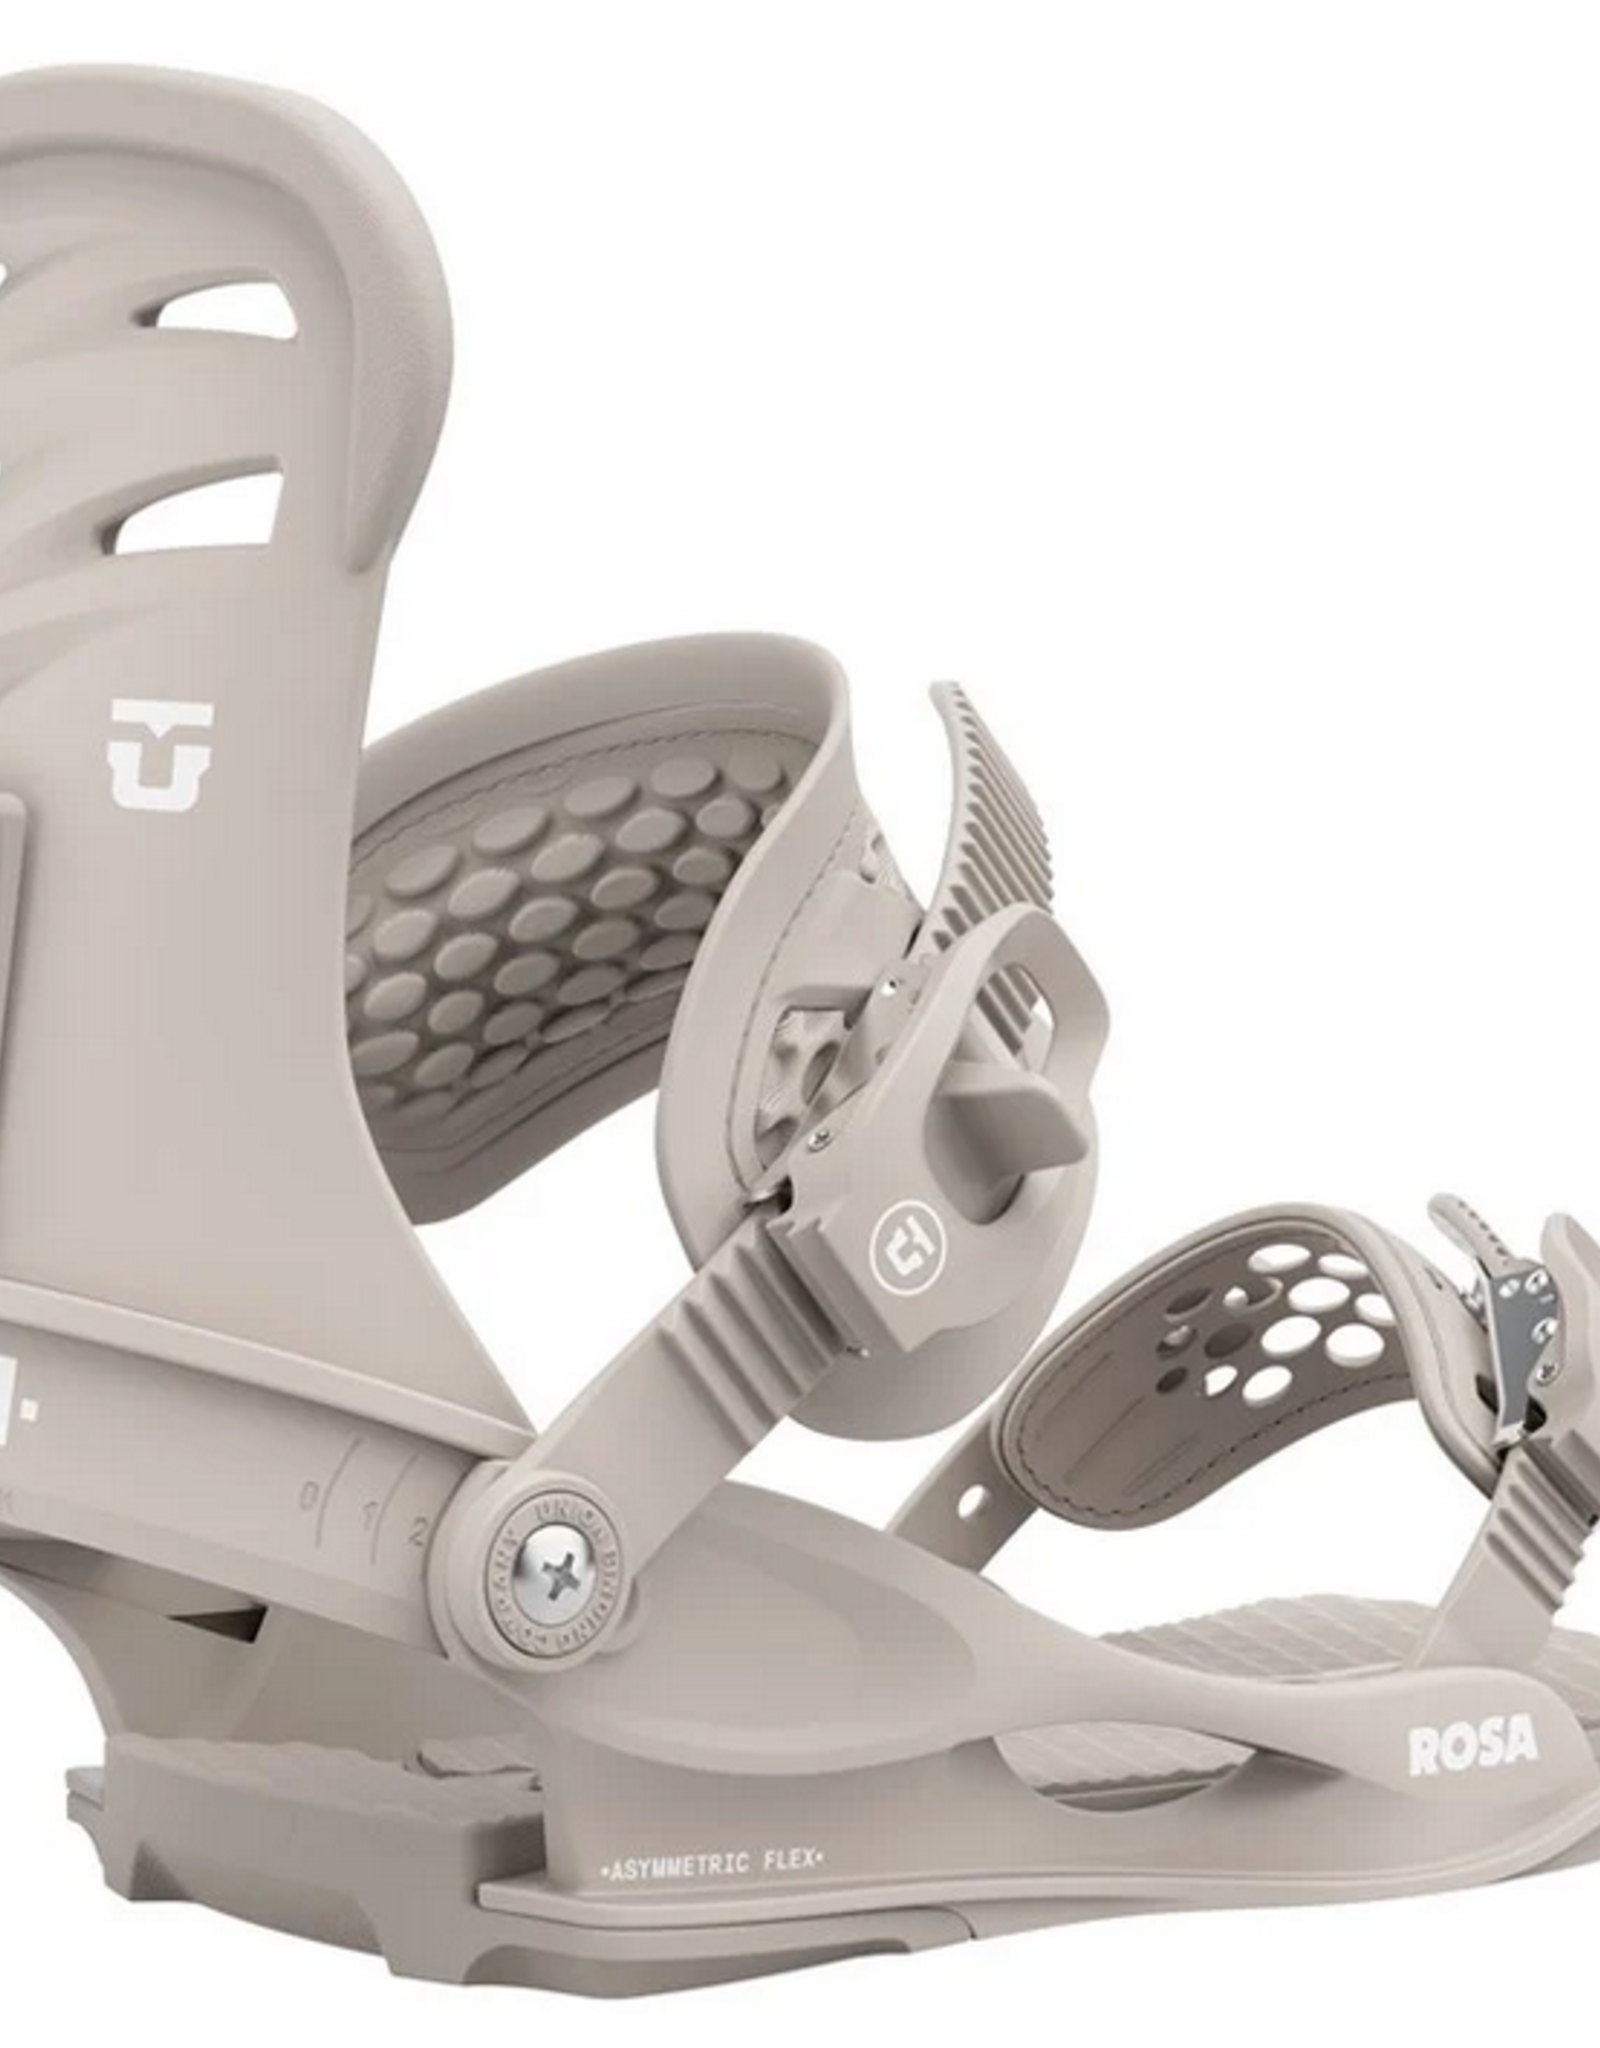 UNION UNION 2021 ROSA BINDINGS